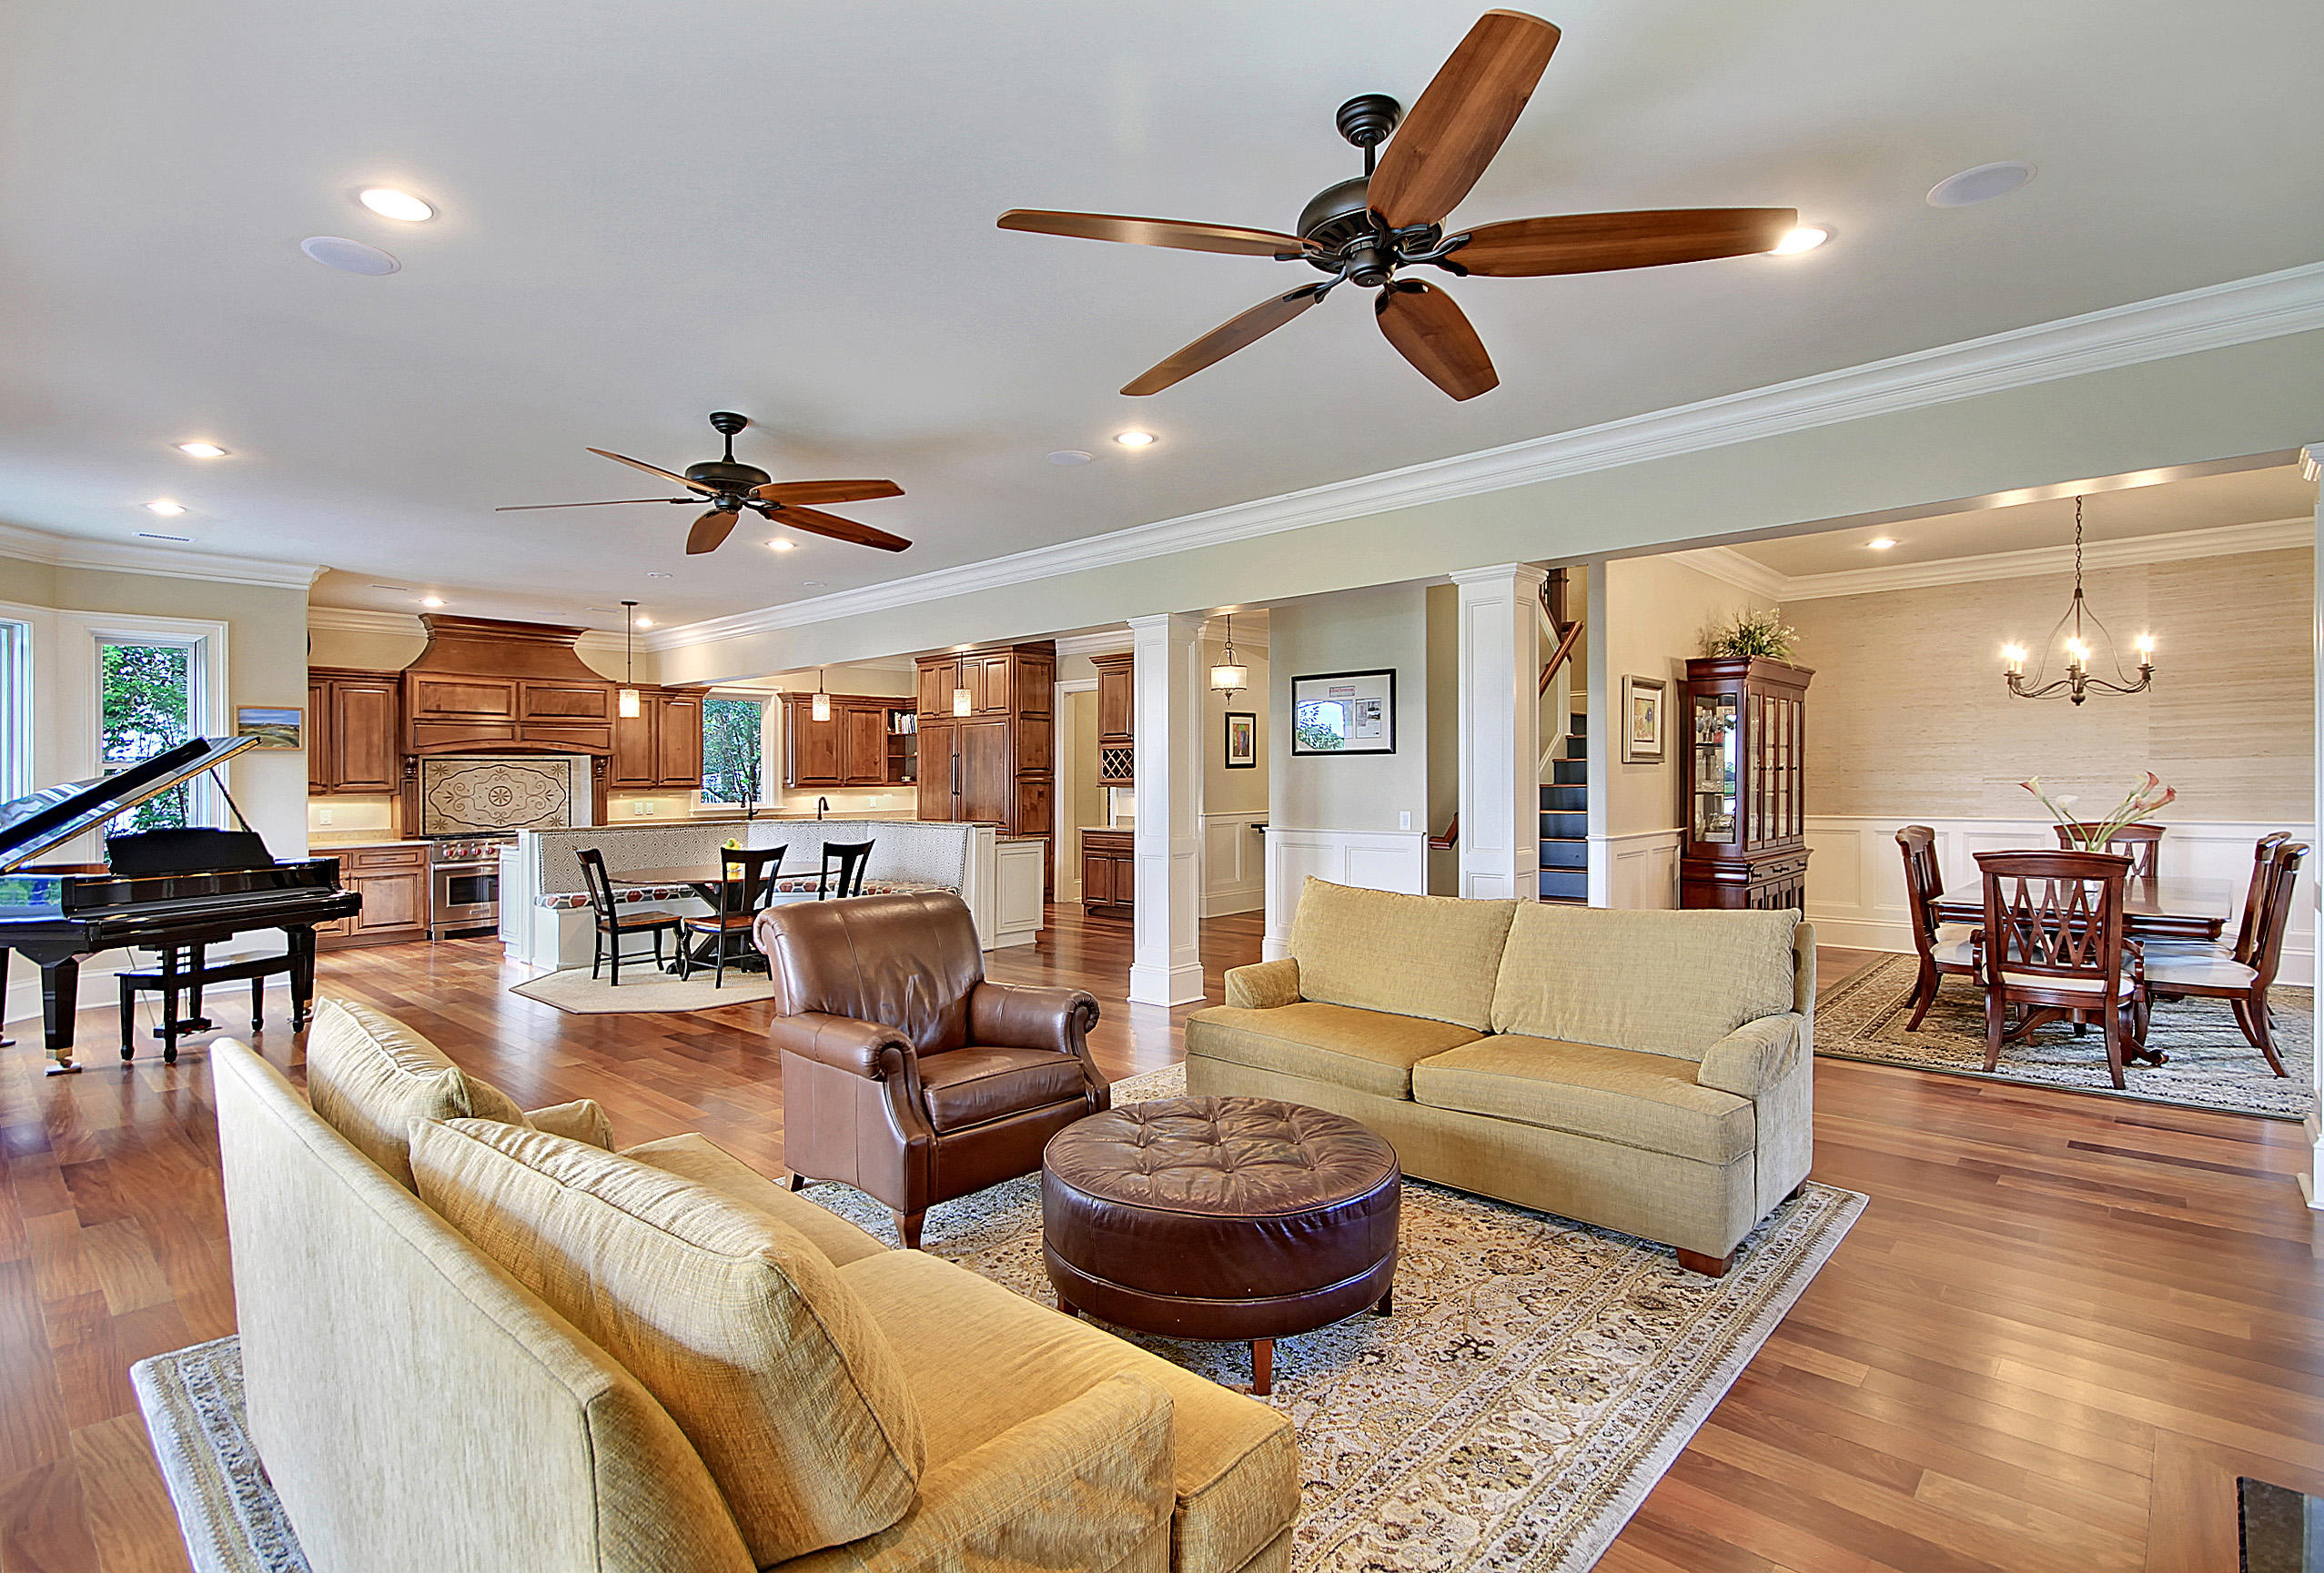 Riverland Terrace Homes For Sale - 2044 Wappoo Hall, Charleston, SC - 101